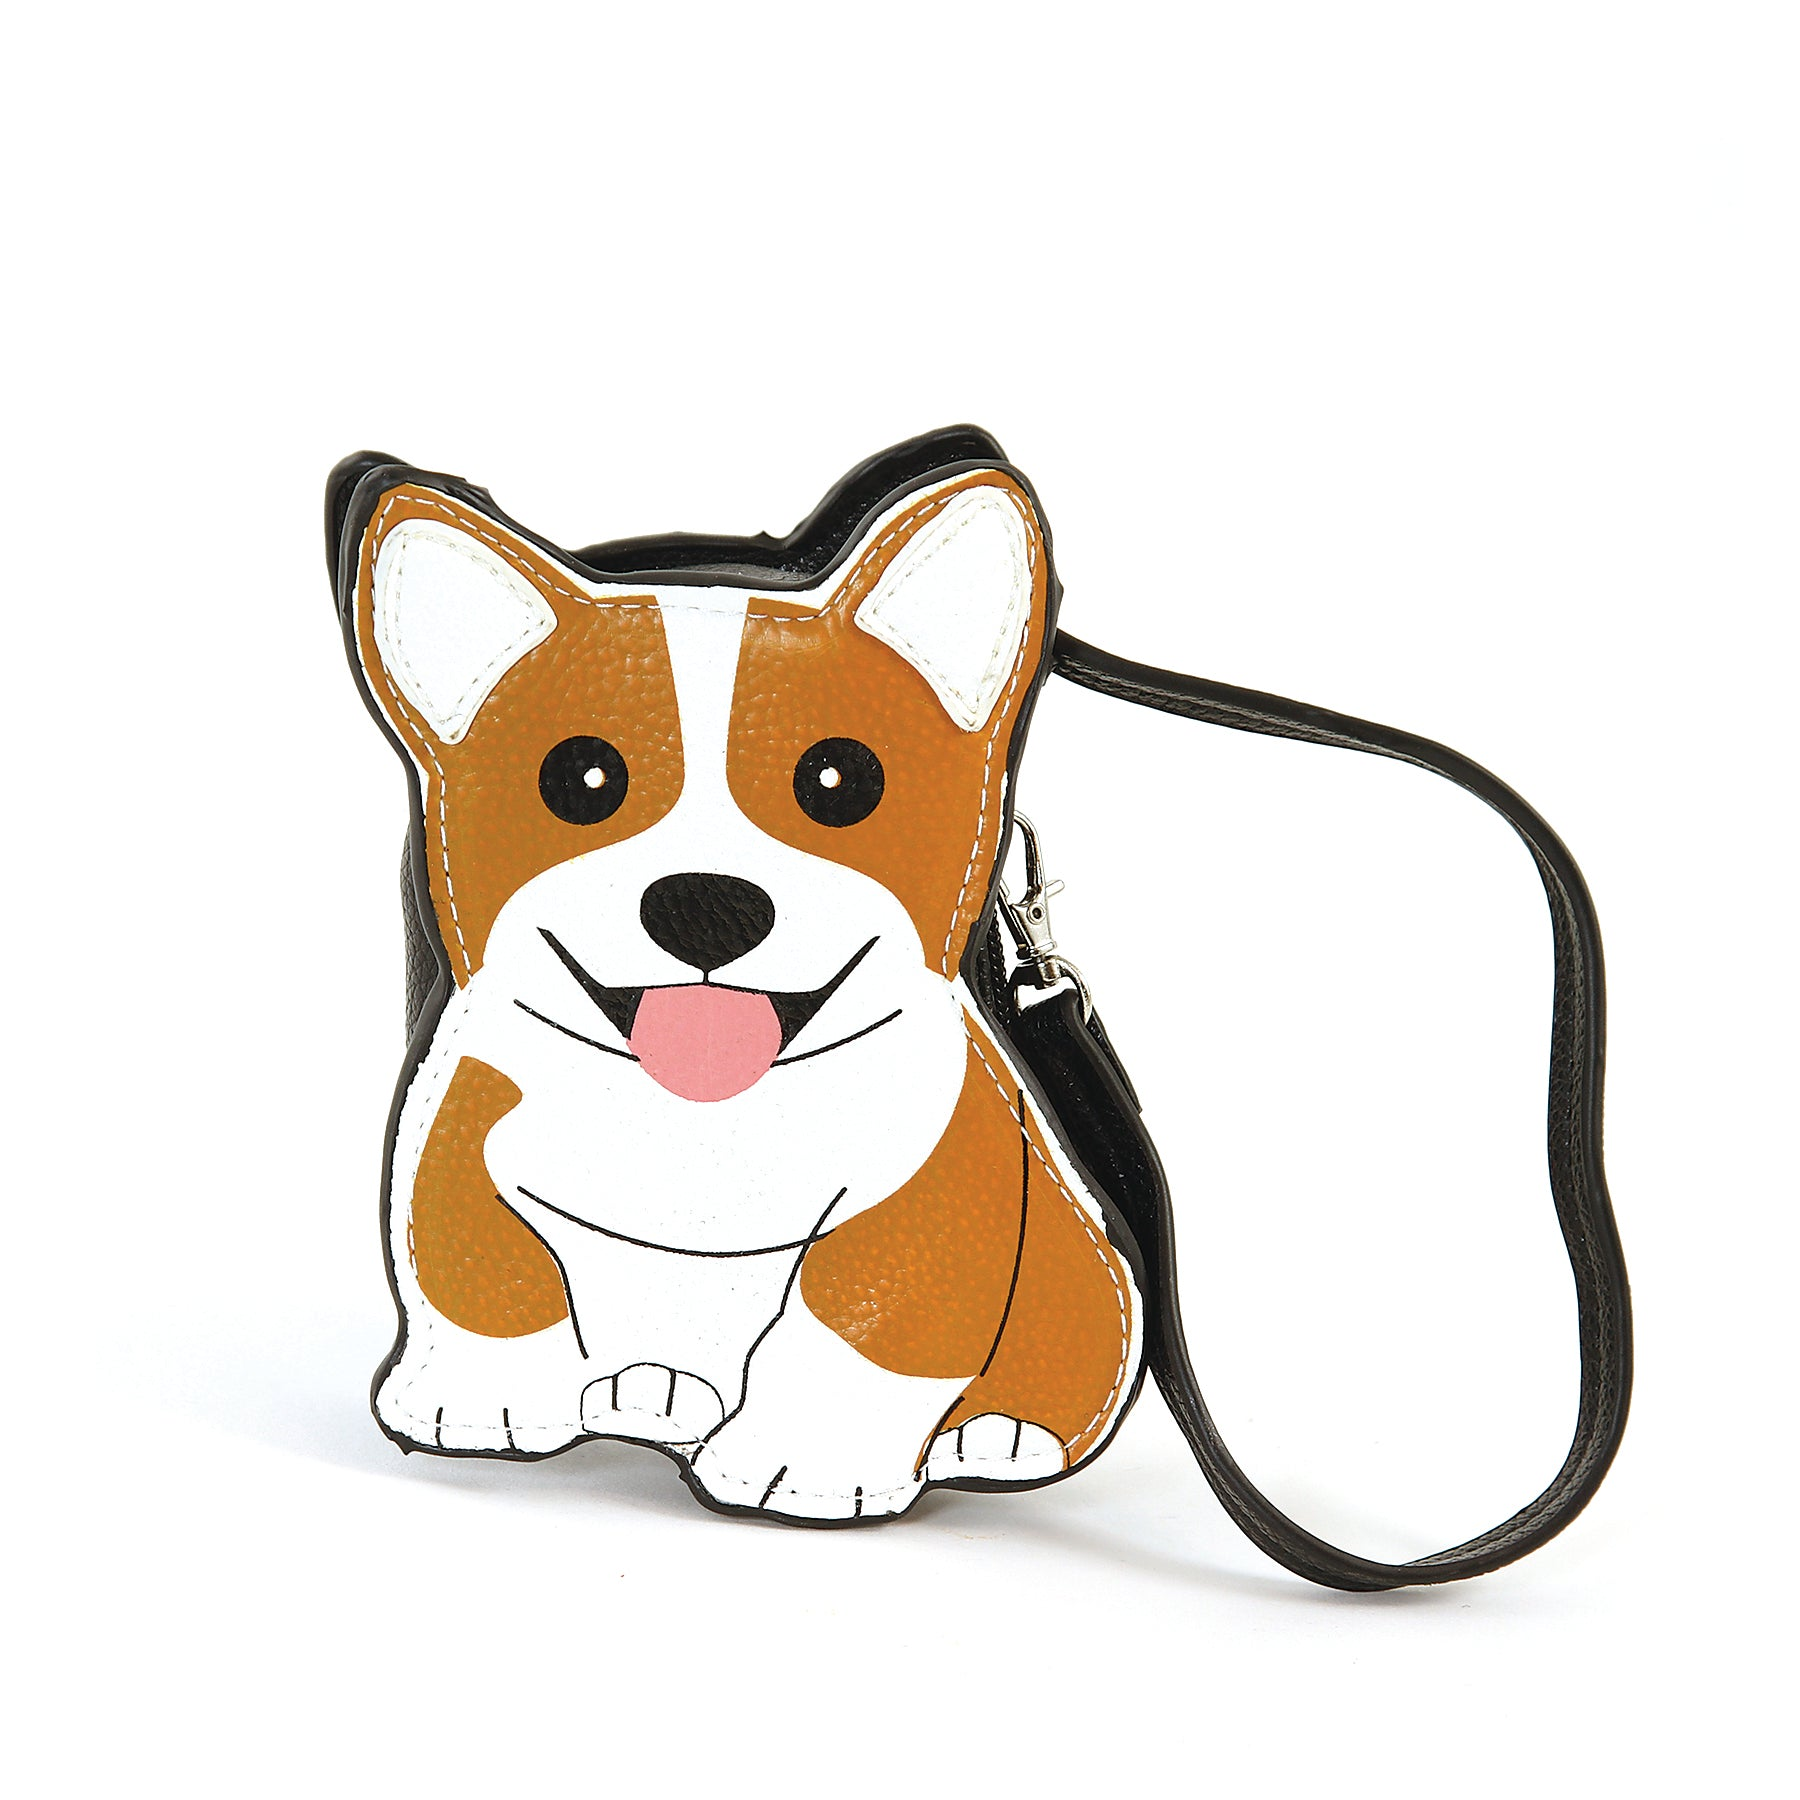 Sleepyville Critters-Corgi Dog Zippered Coin Purse in Vinyl Material front view